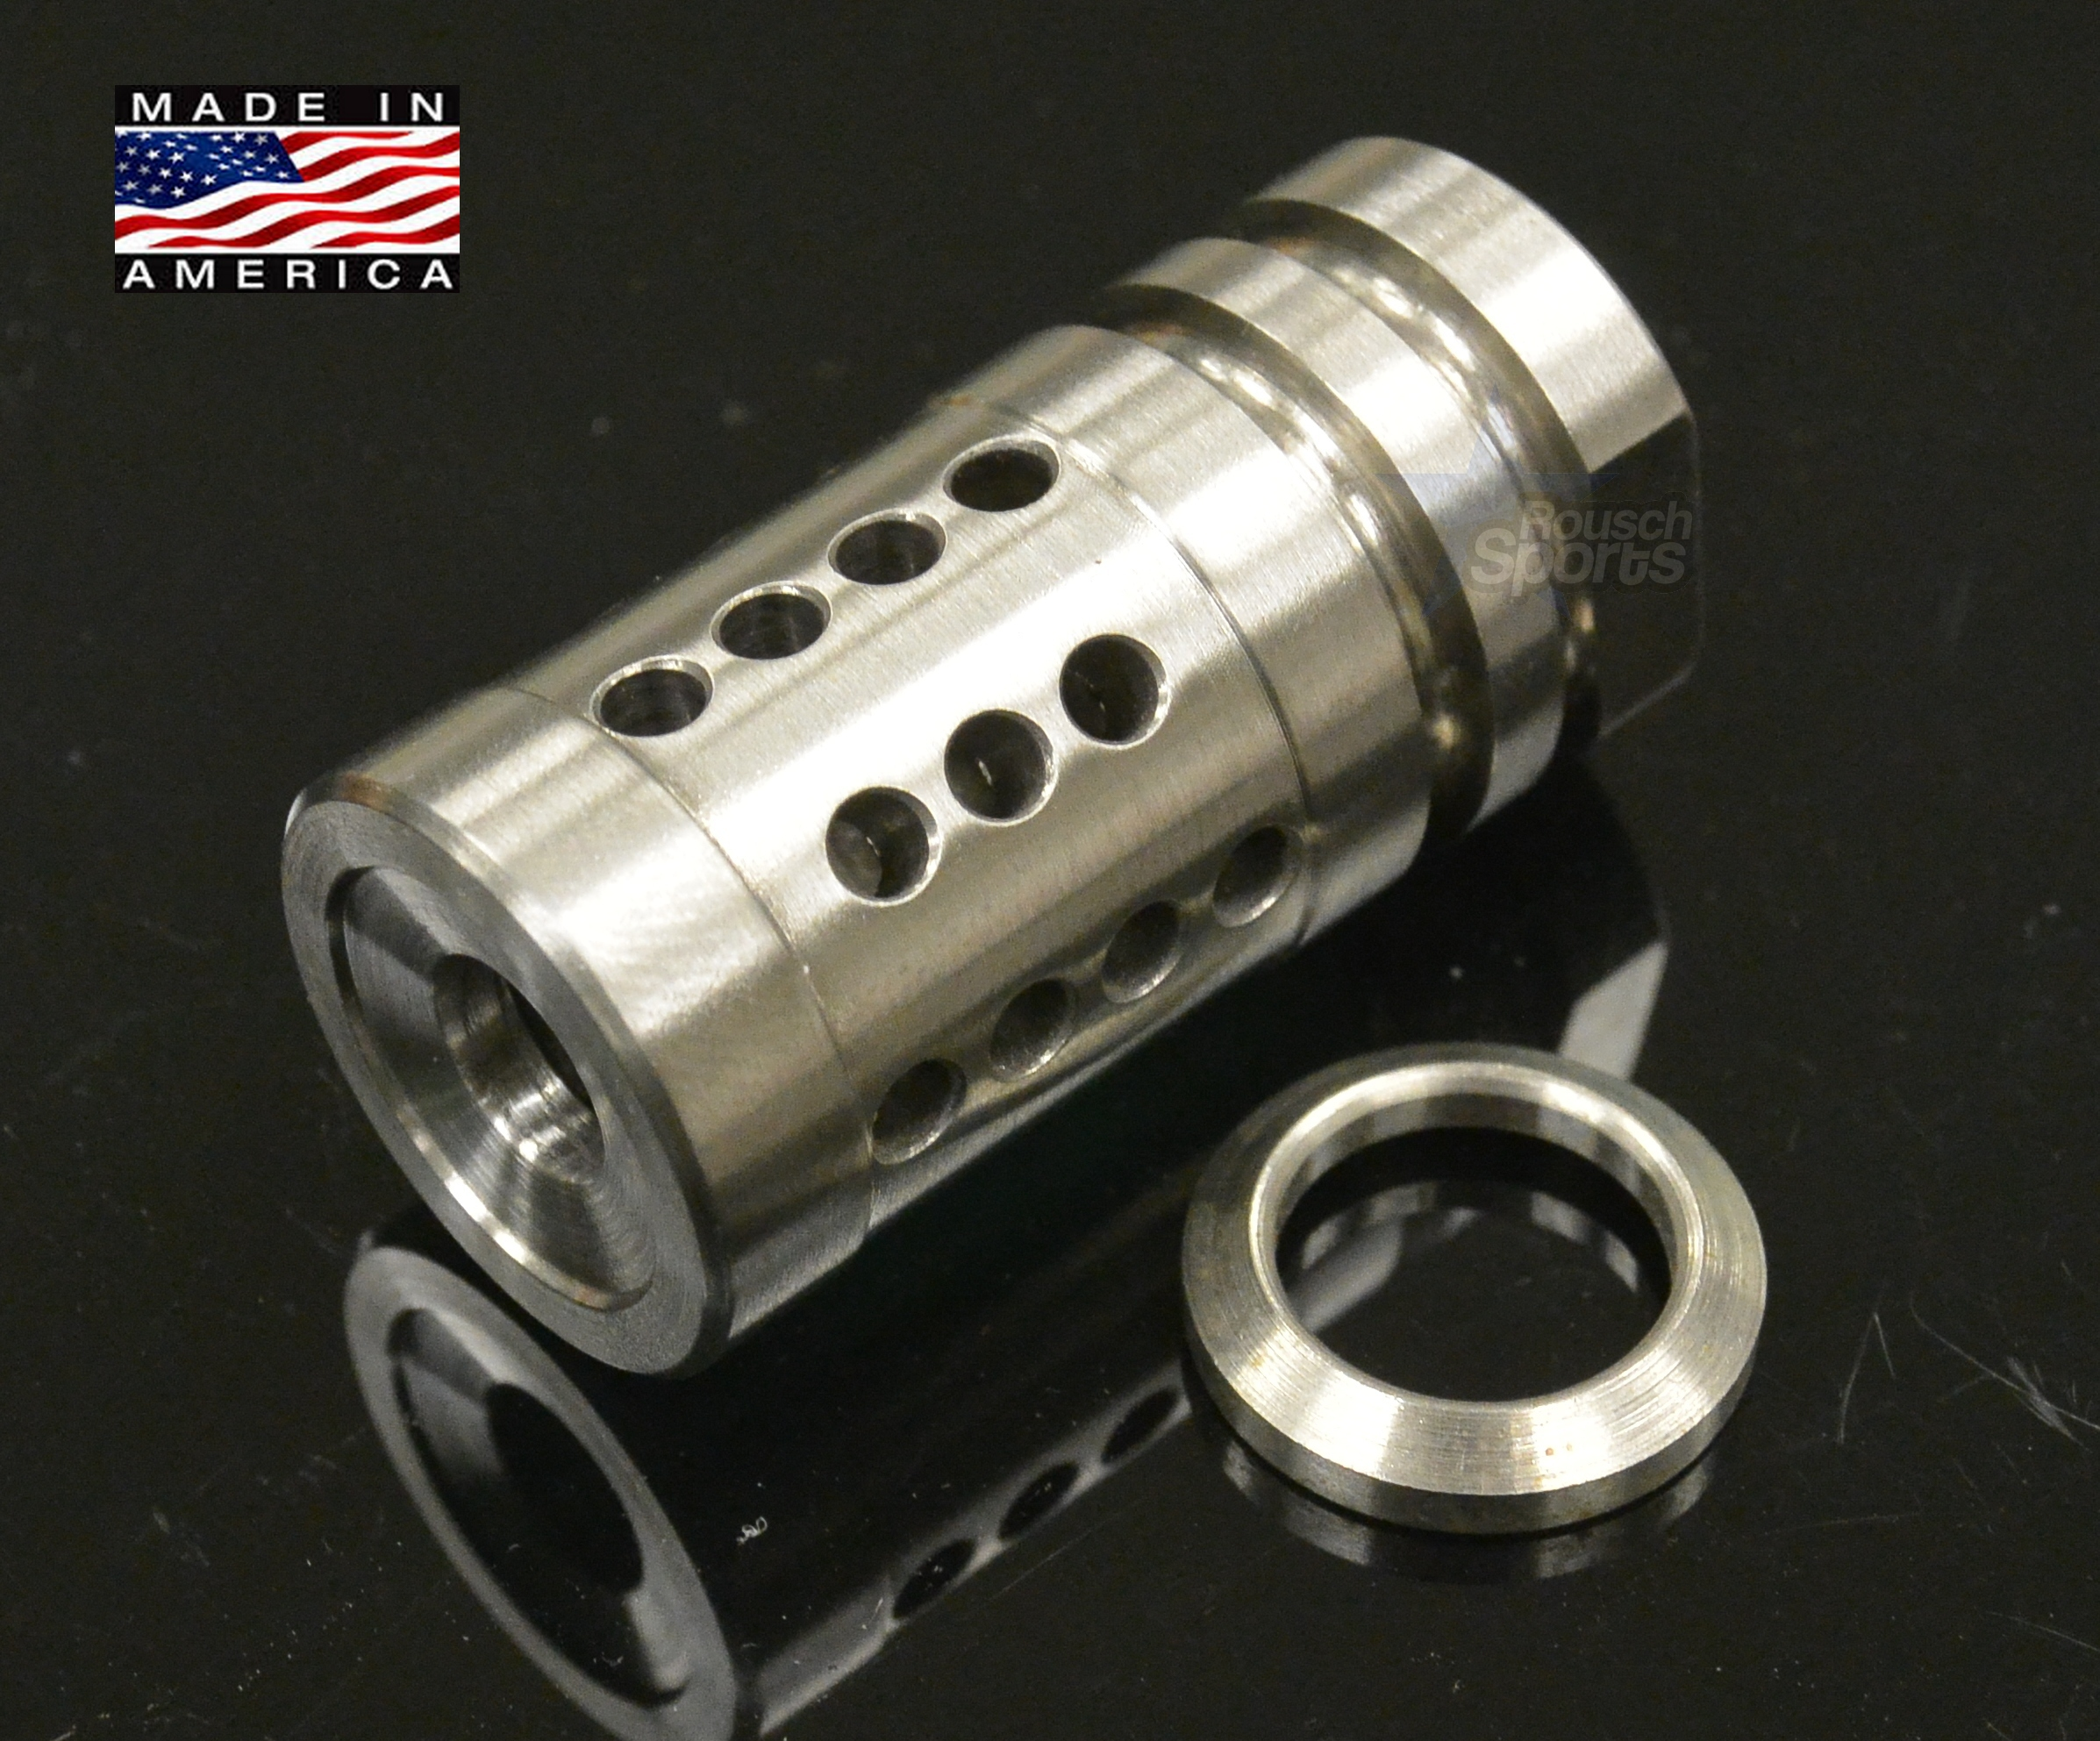 FXH-C2 Shorty Stainless Steel Muzzle Brake Compensator A2 Style 6.5 Grendel M16 M4 AR15 Austin Texas Best Discount Wholesale Price Accessories RIfle Pistol Handgun Long Gun